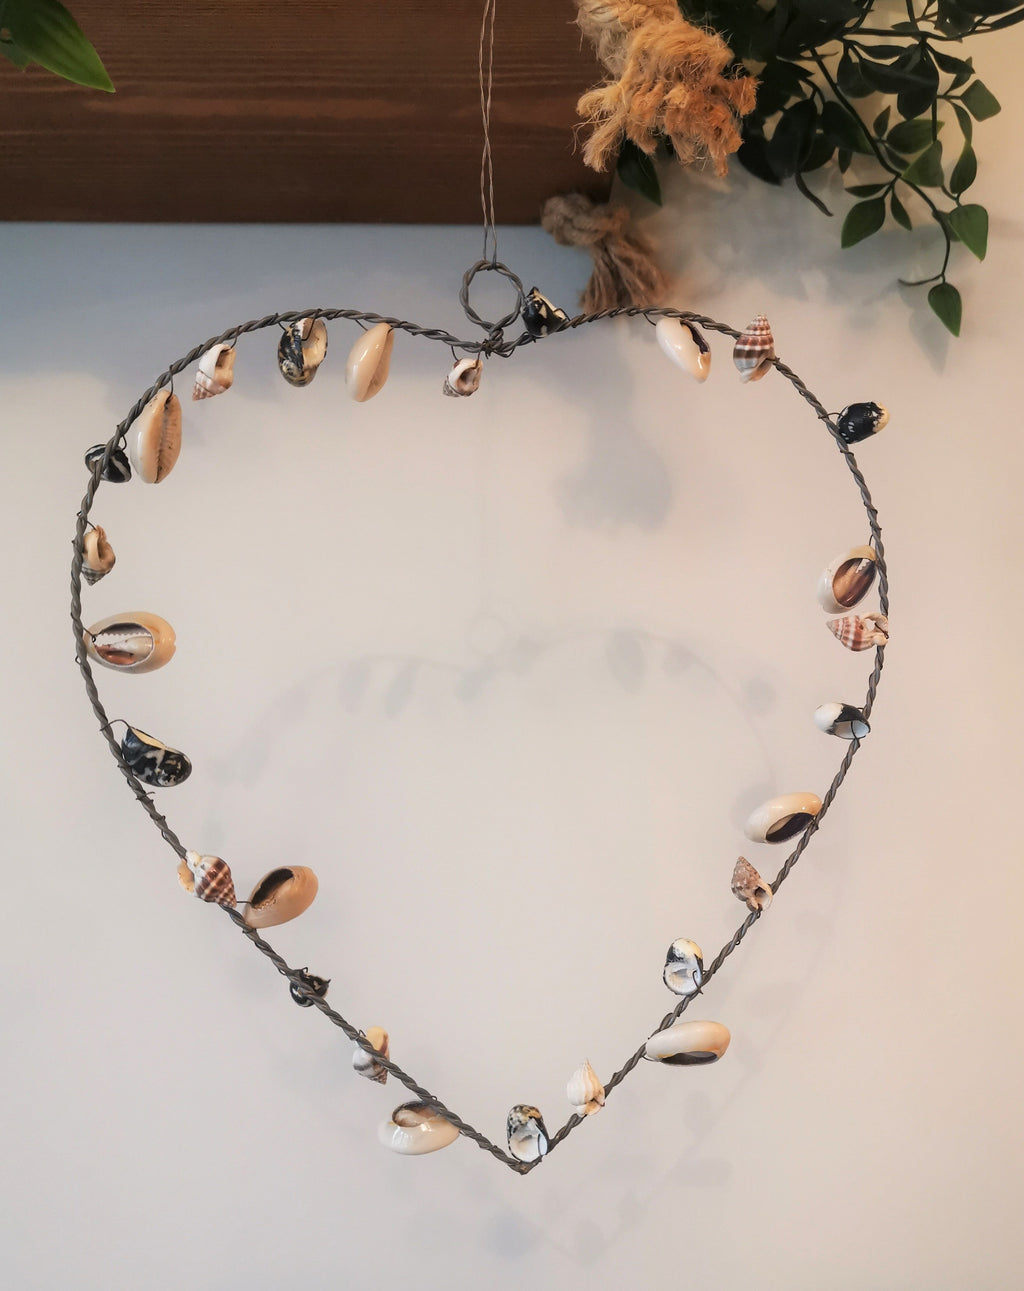 Hanging Seashell Heart - The Burrow Interiors